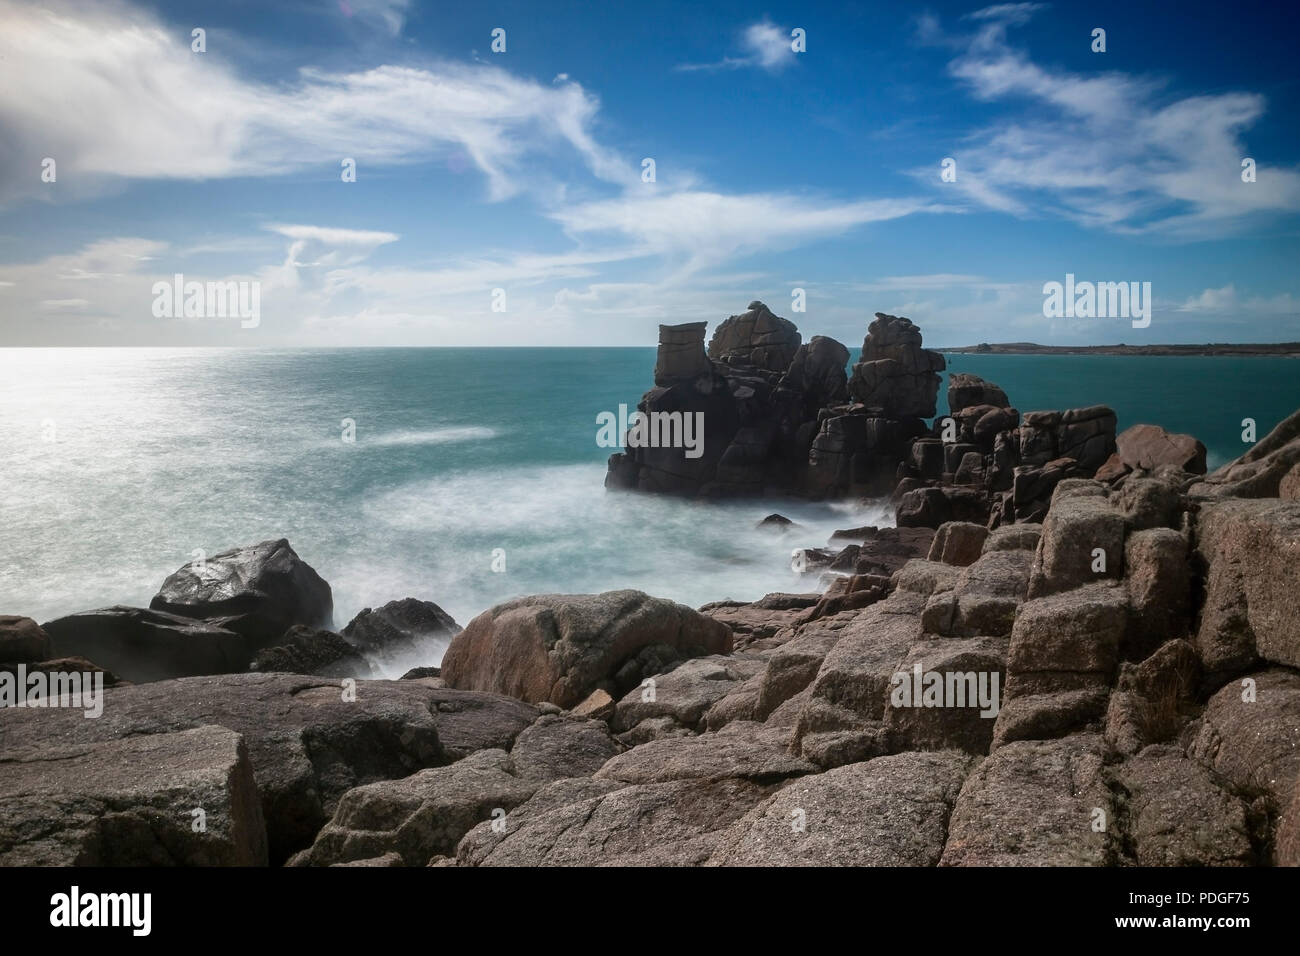 The rock formation known as The Chair, Peninnis Head, St. Mary's, Isles of Scilly, UK: ND filter gives a blurred effect tothe sea and sky - Stock Image